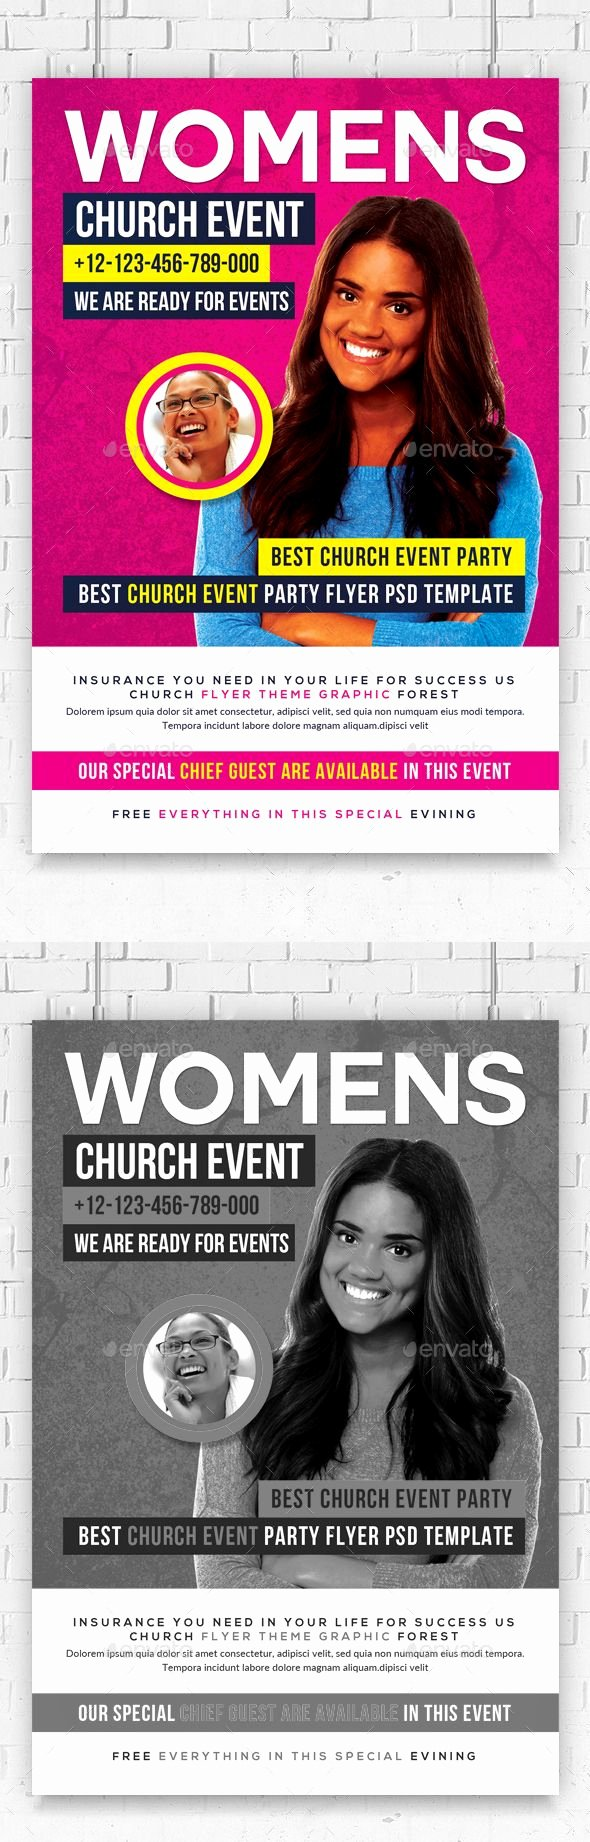 Free Church Flyer Templates Elegant 256 Best Images About Media On Pinterest